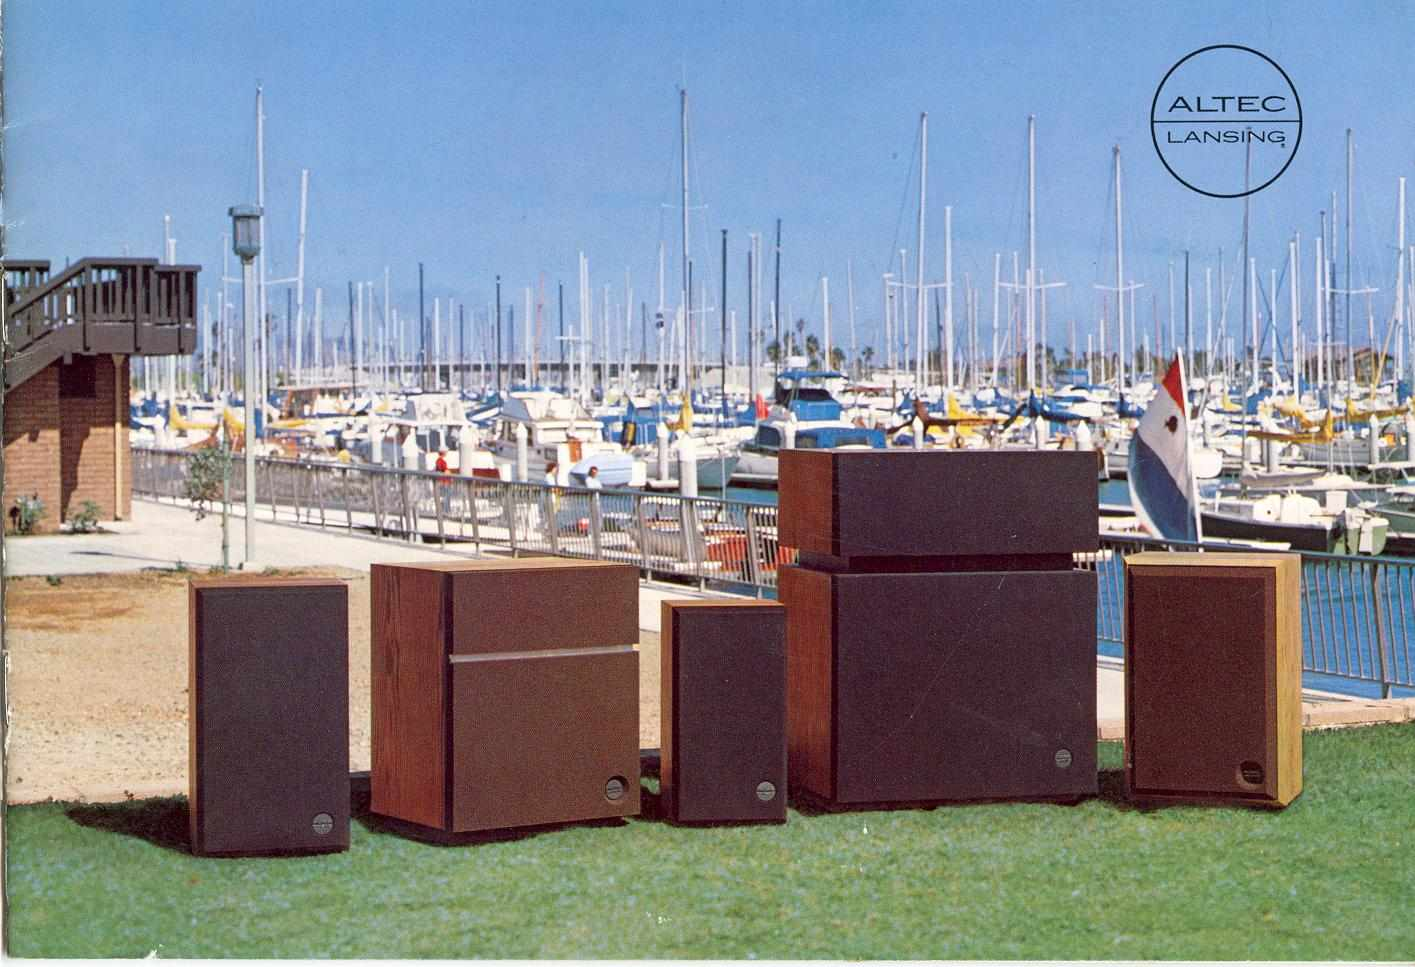 Altec Lansing 1978 Brochure